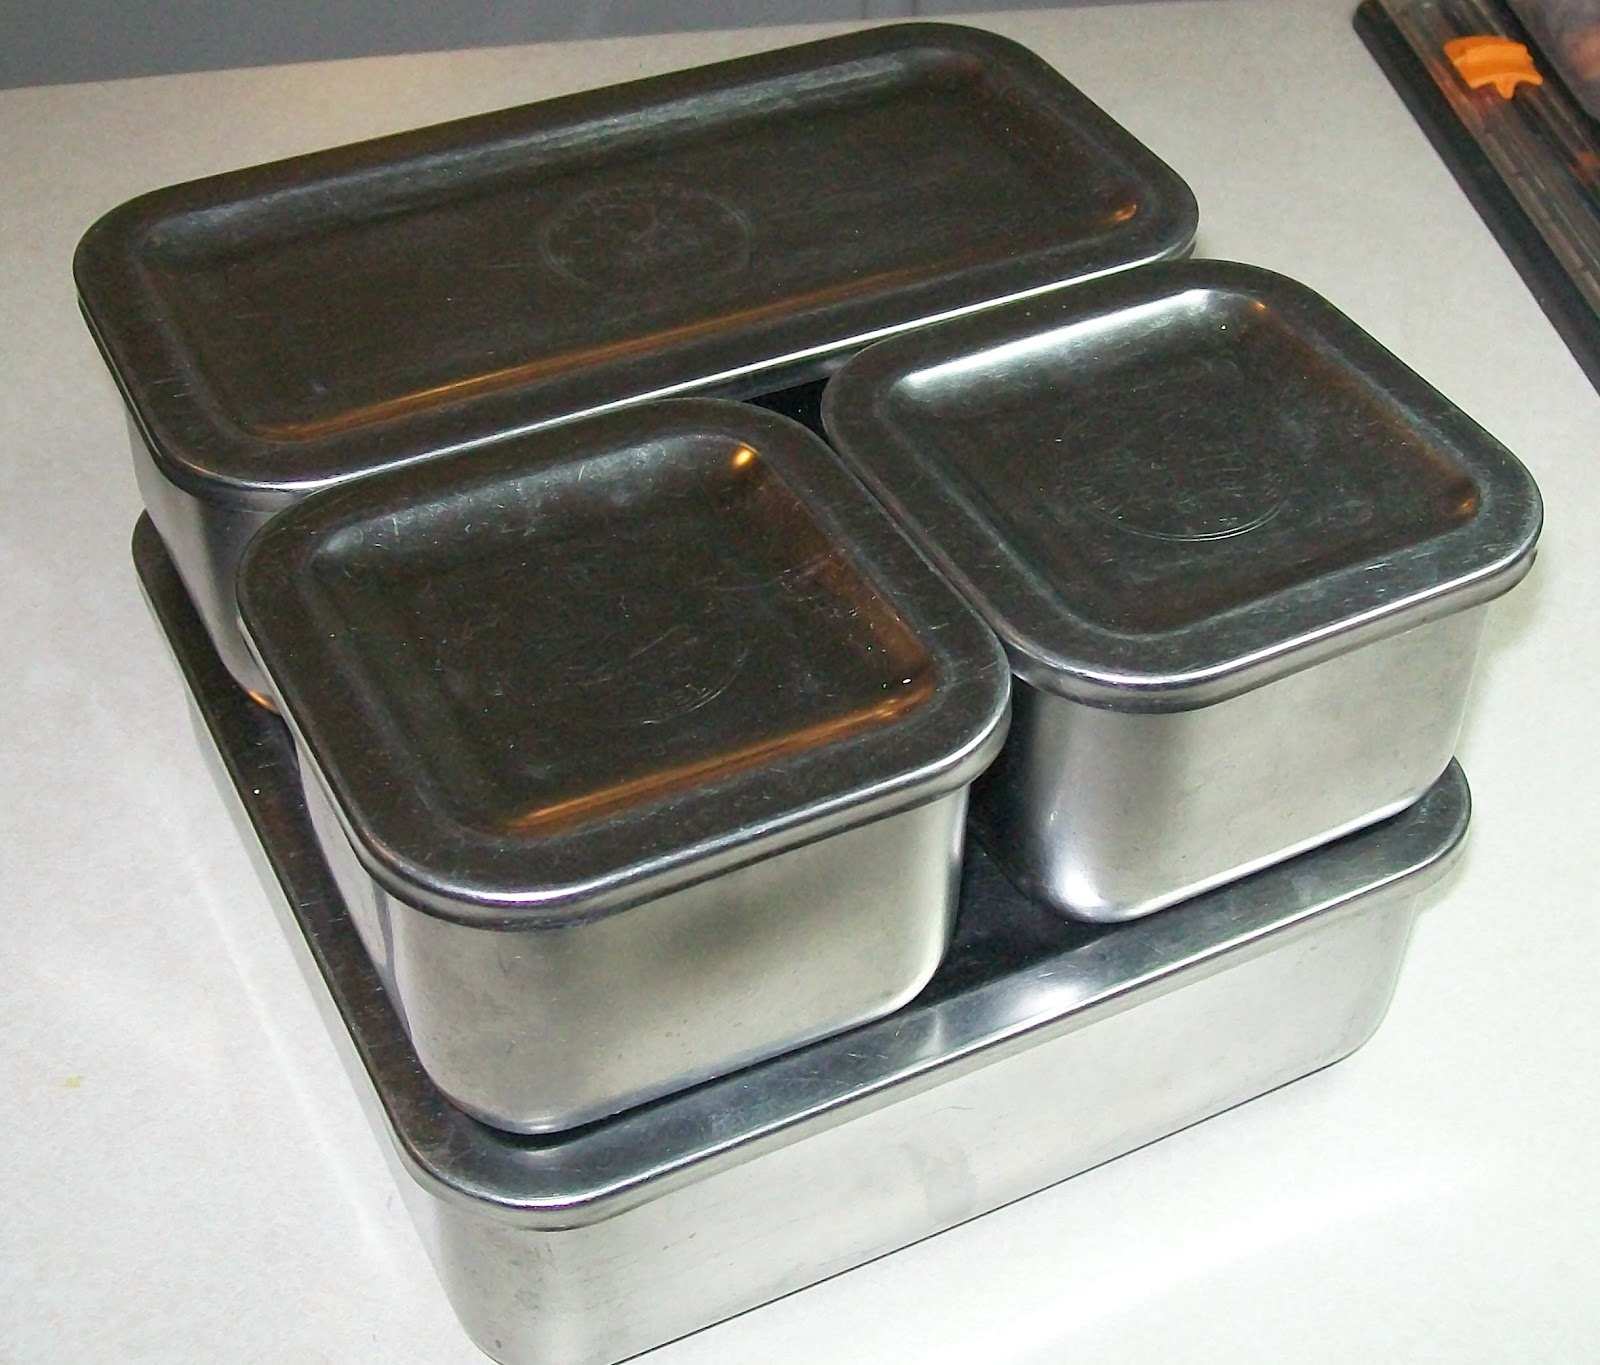 It Is A Vintage 4 Piece Set Of Revere Ware Refrigerator Storage Dishes,  Stainless Steel. I Paid $2.00 For The Set. It Was The Last Day Of An Estate  Sale, ...